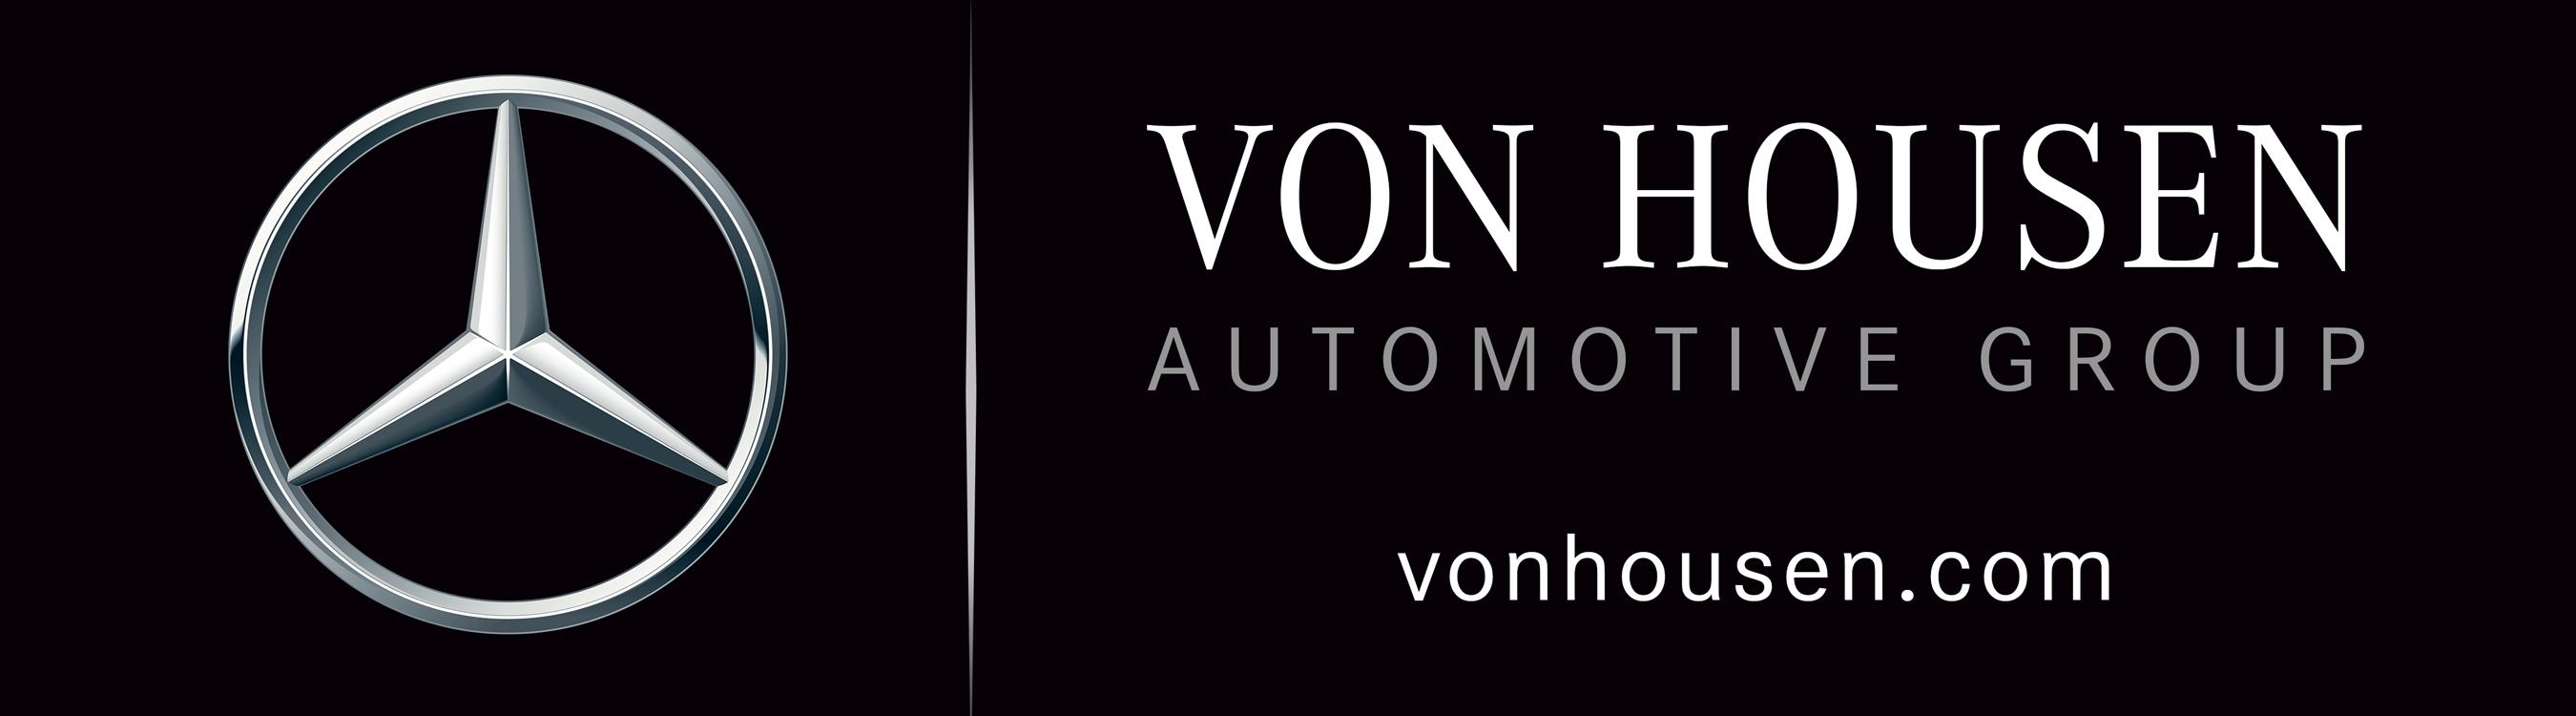 Von Housen Automotive Group